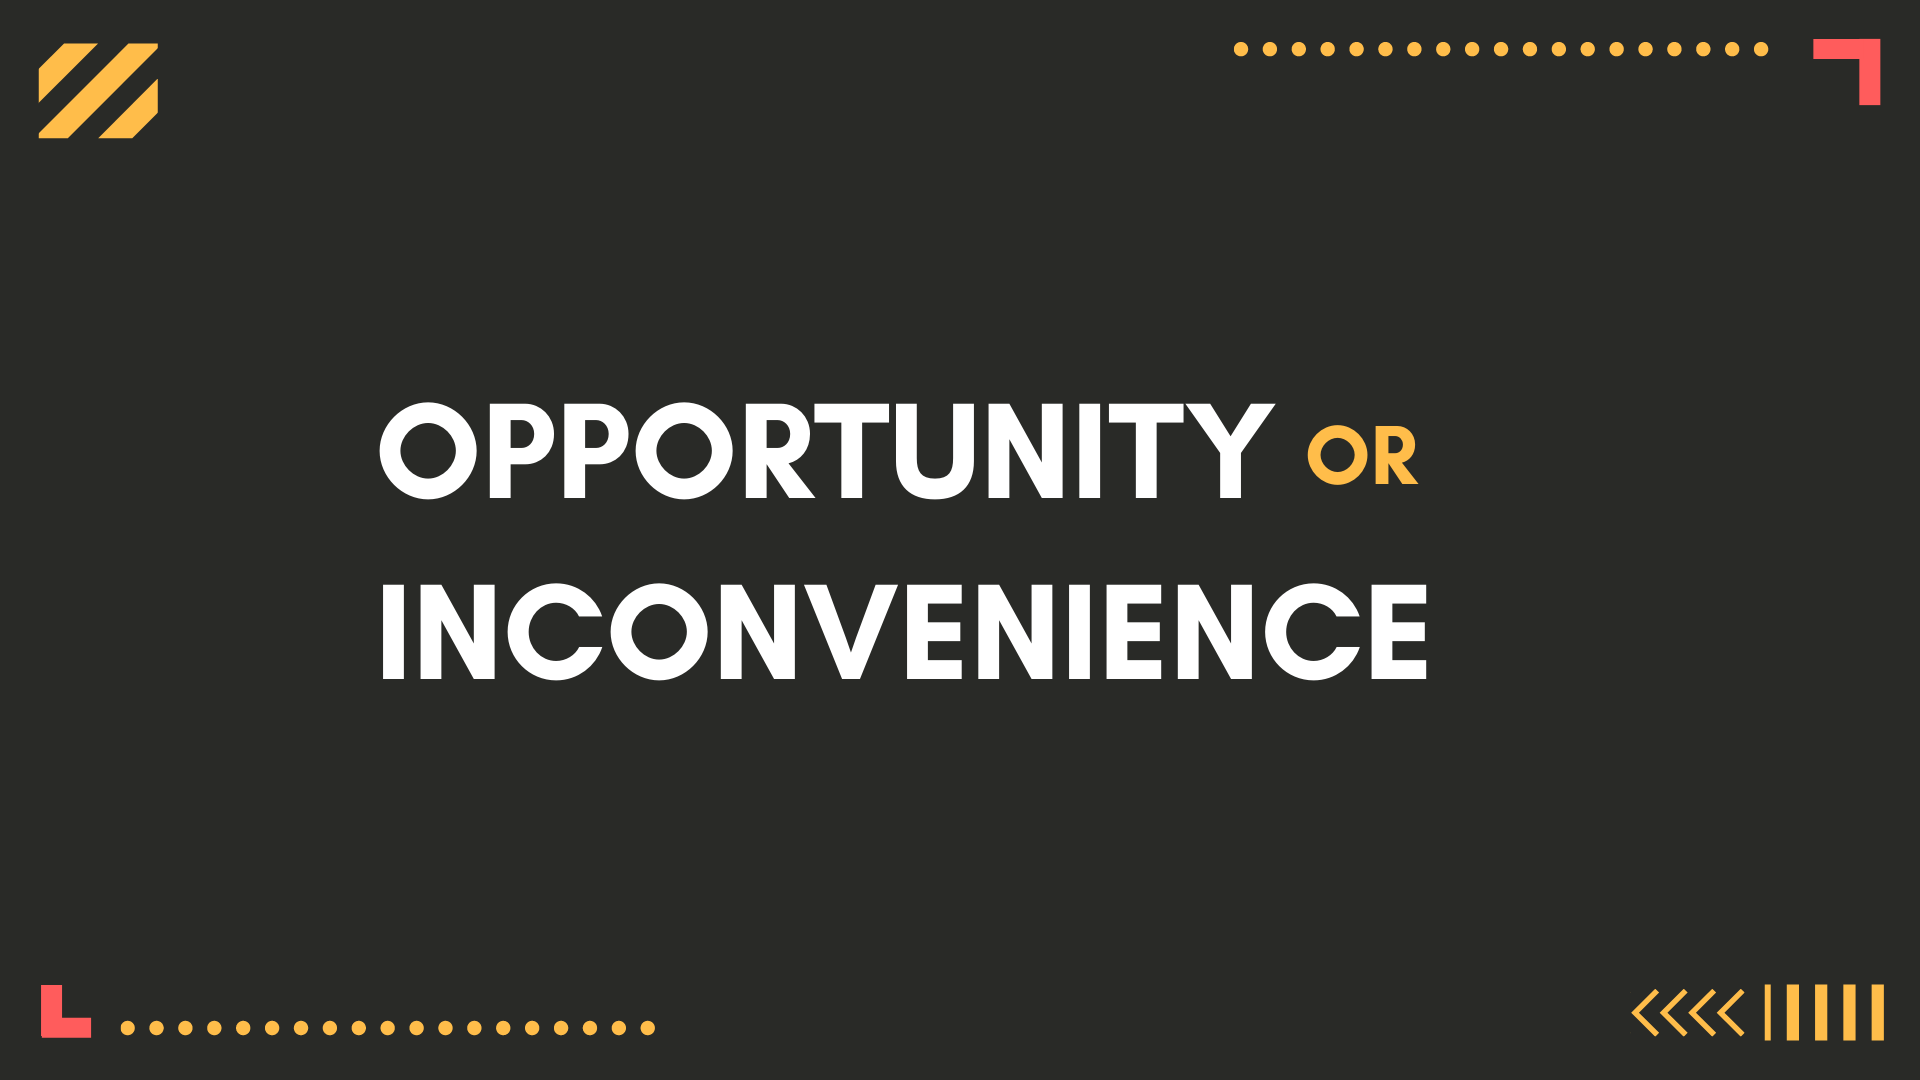 Opportunity or Inconvenience?